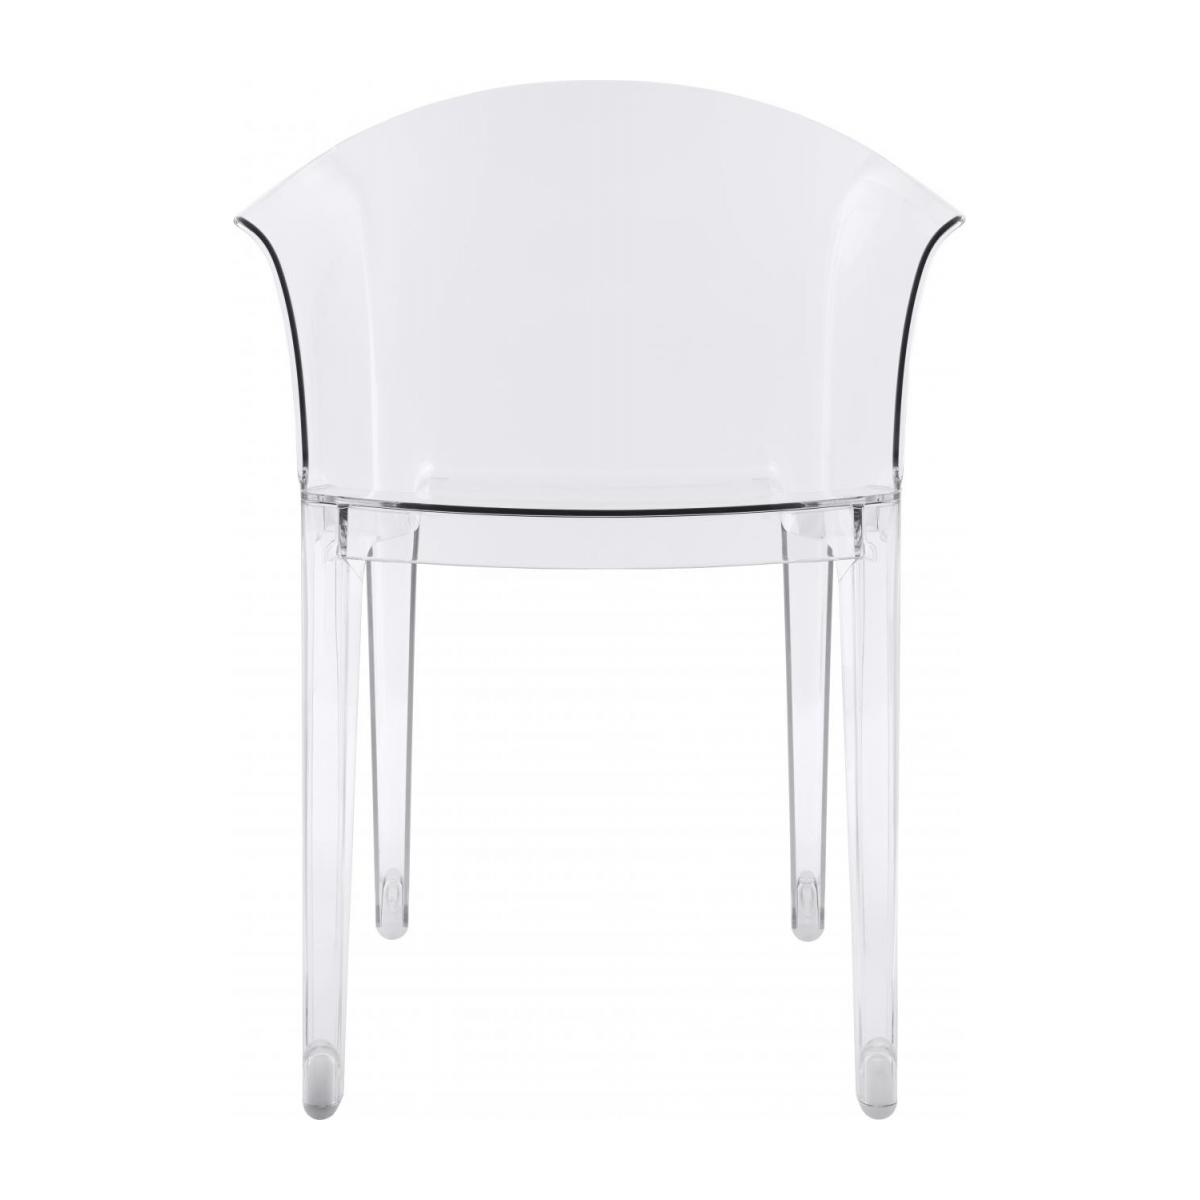 Transparent armchair in polycarbonate n°4